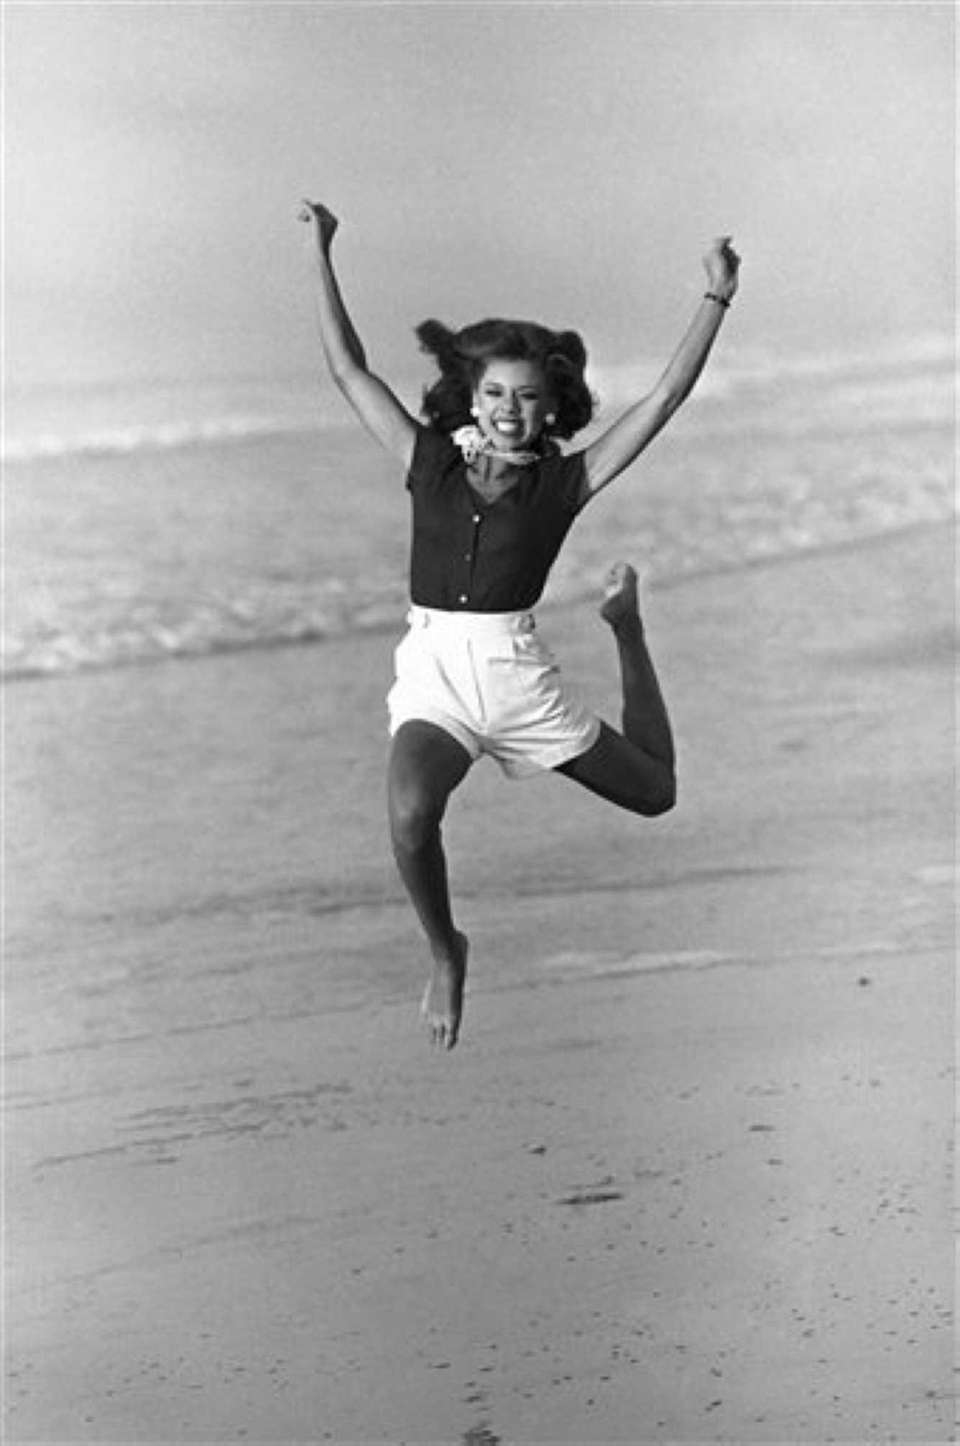 Vanessa Williams, Miss America 1984, jumps for photographers